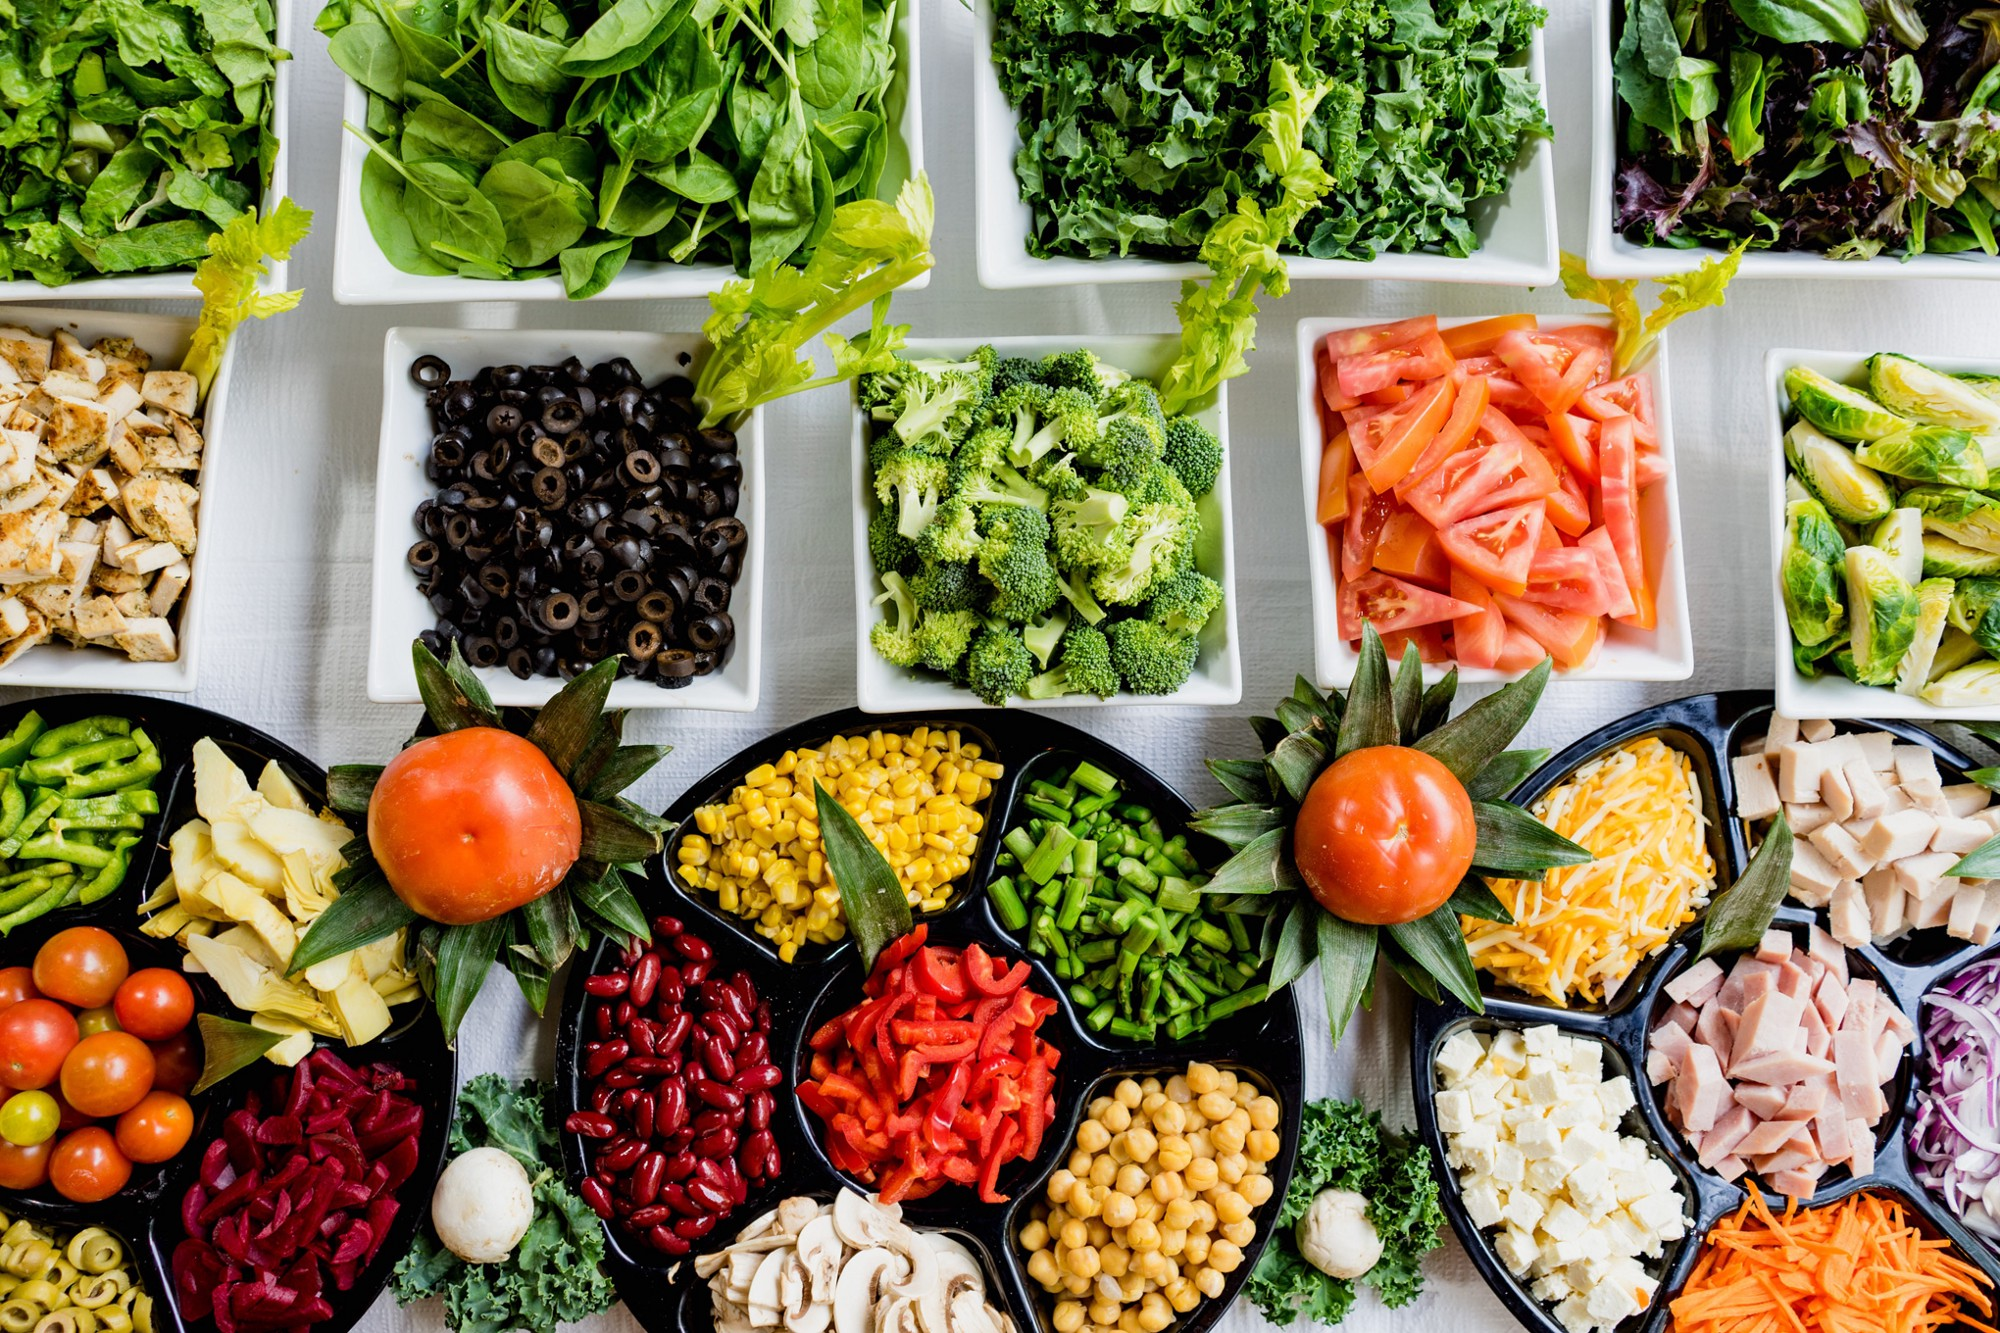 colorful salad bar with a wide variety of vegetables, meats, and cheeses